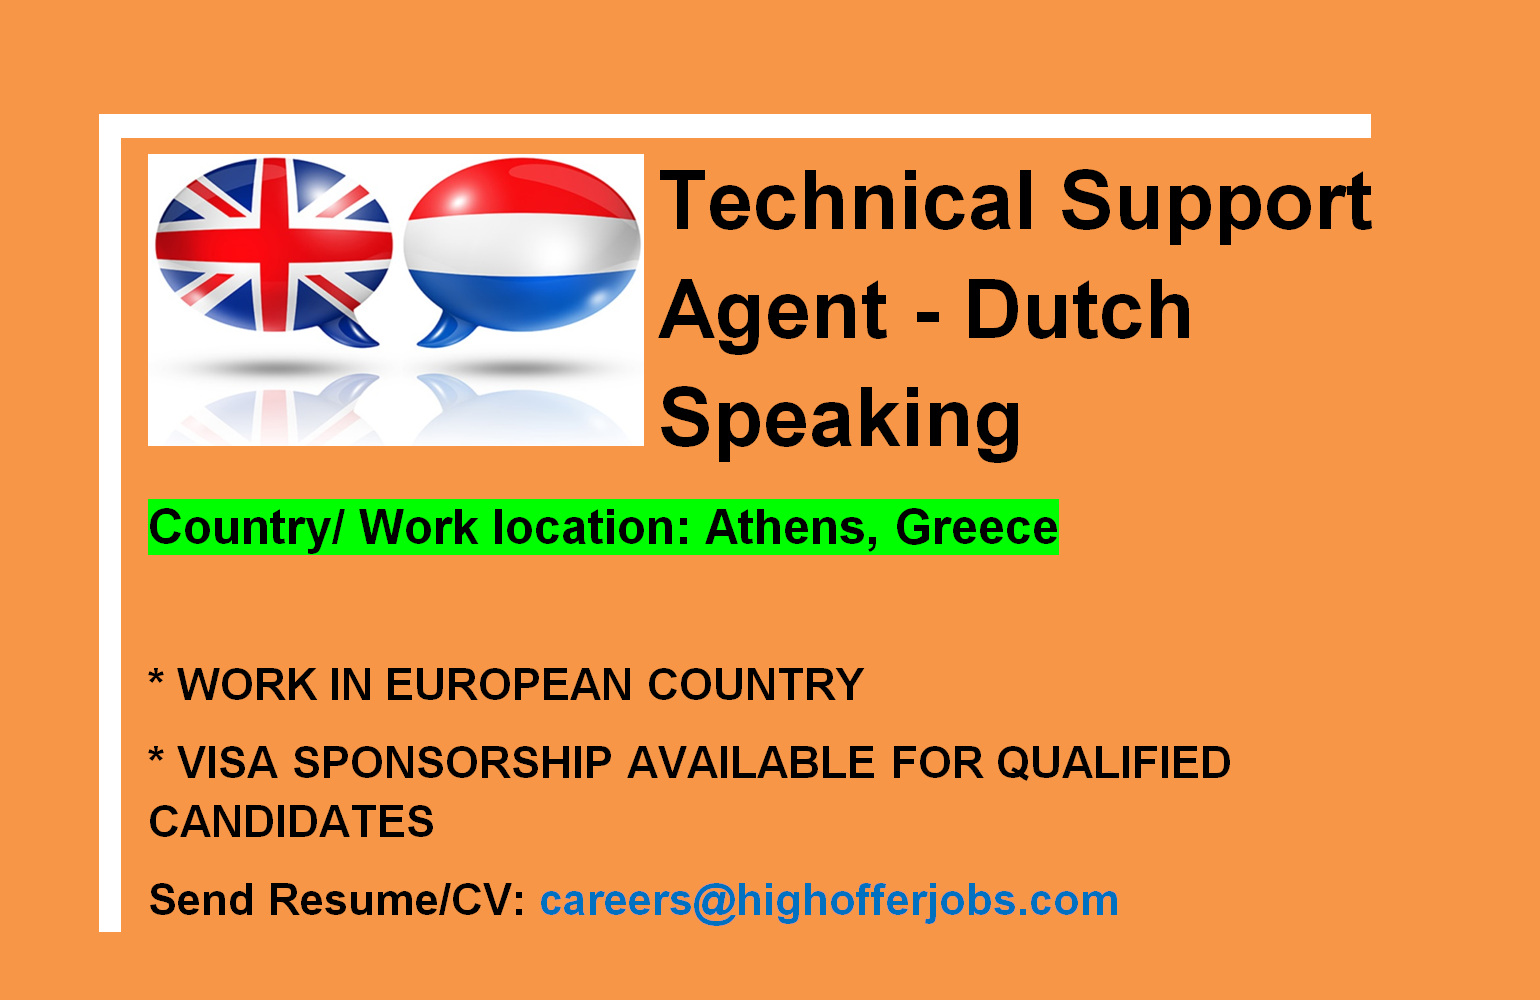 Dutch Speaking Technical Support